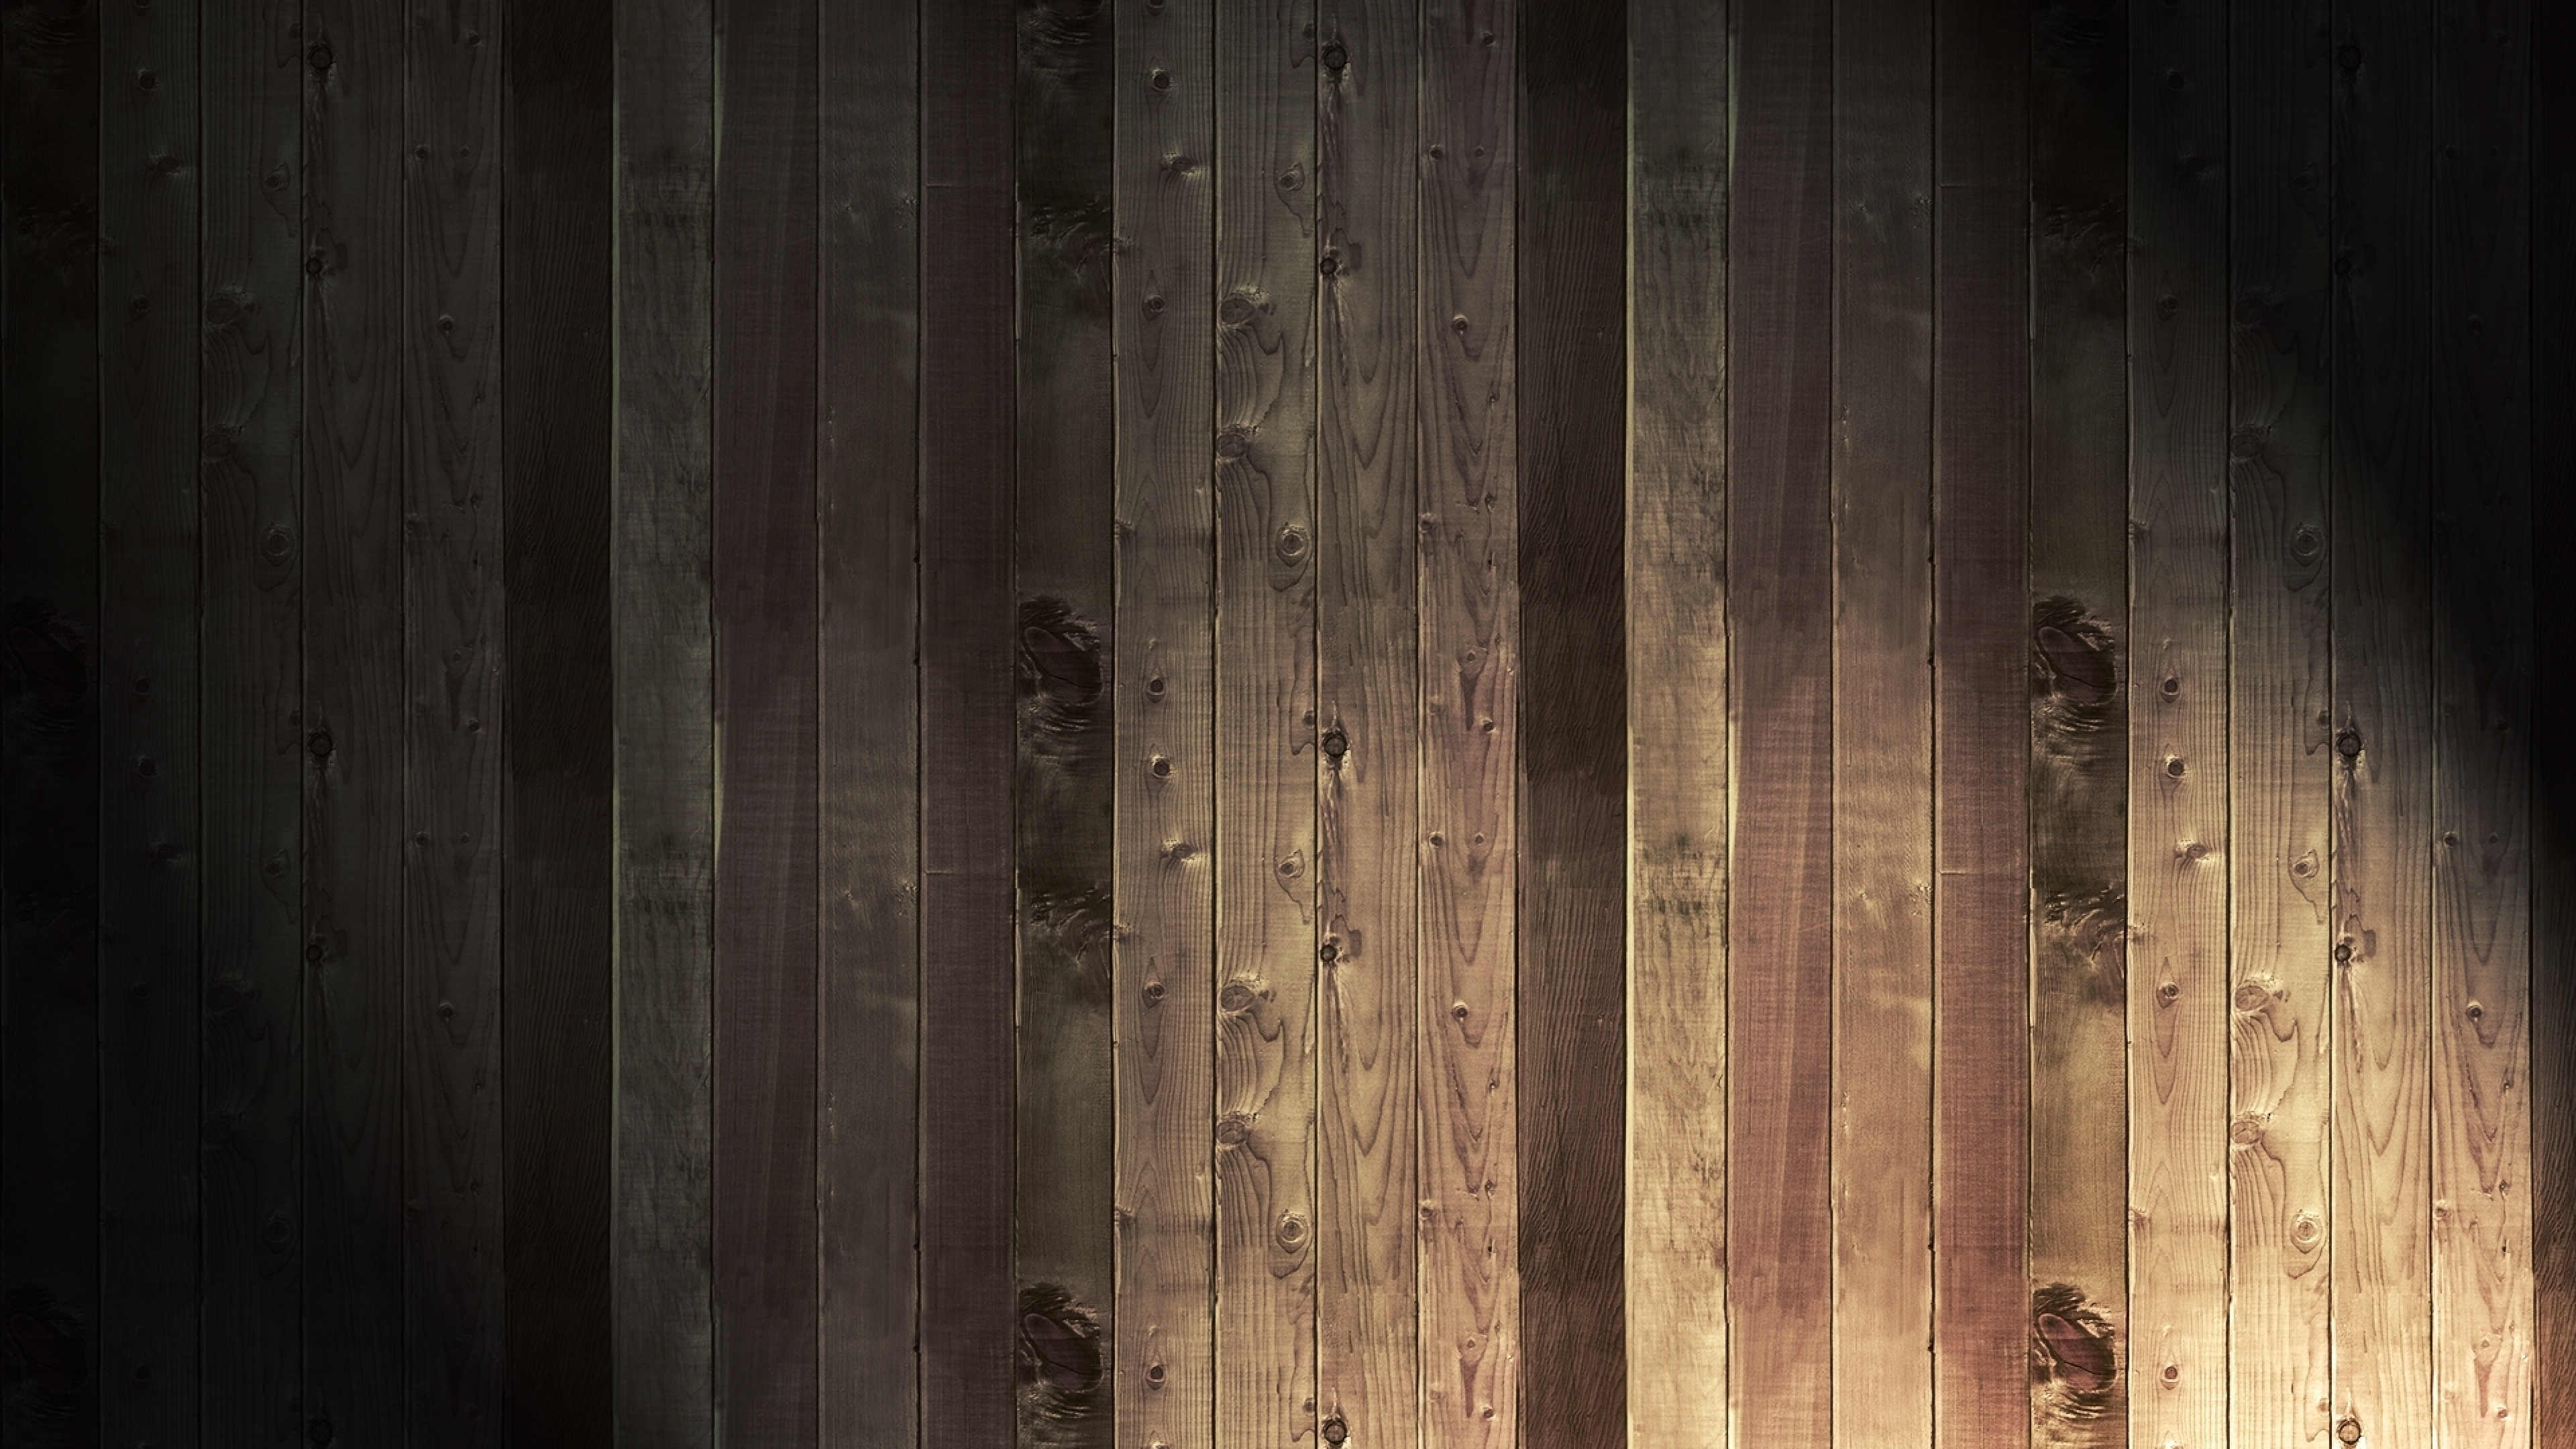 Wood Texture Background Shadow Wallpaper Background 4K Ultra HD 3840x2160